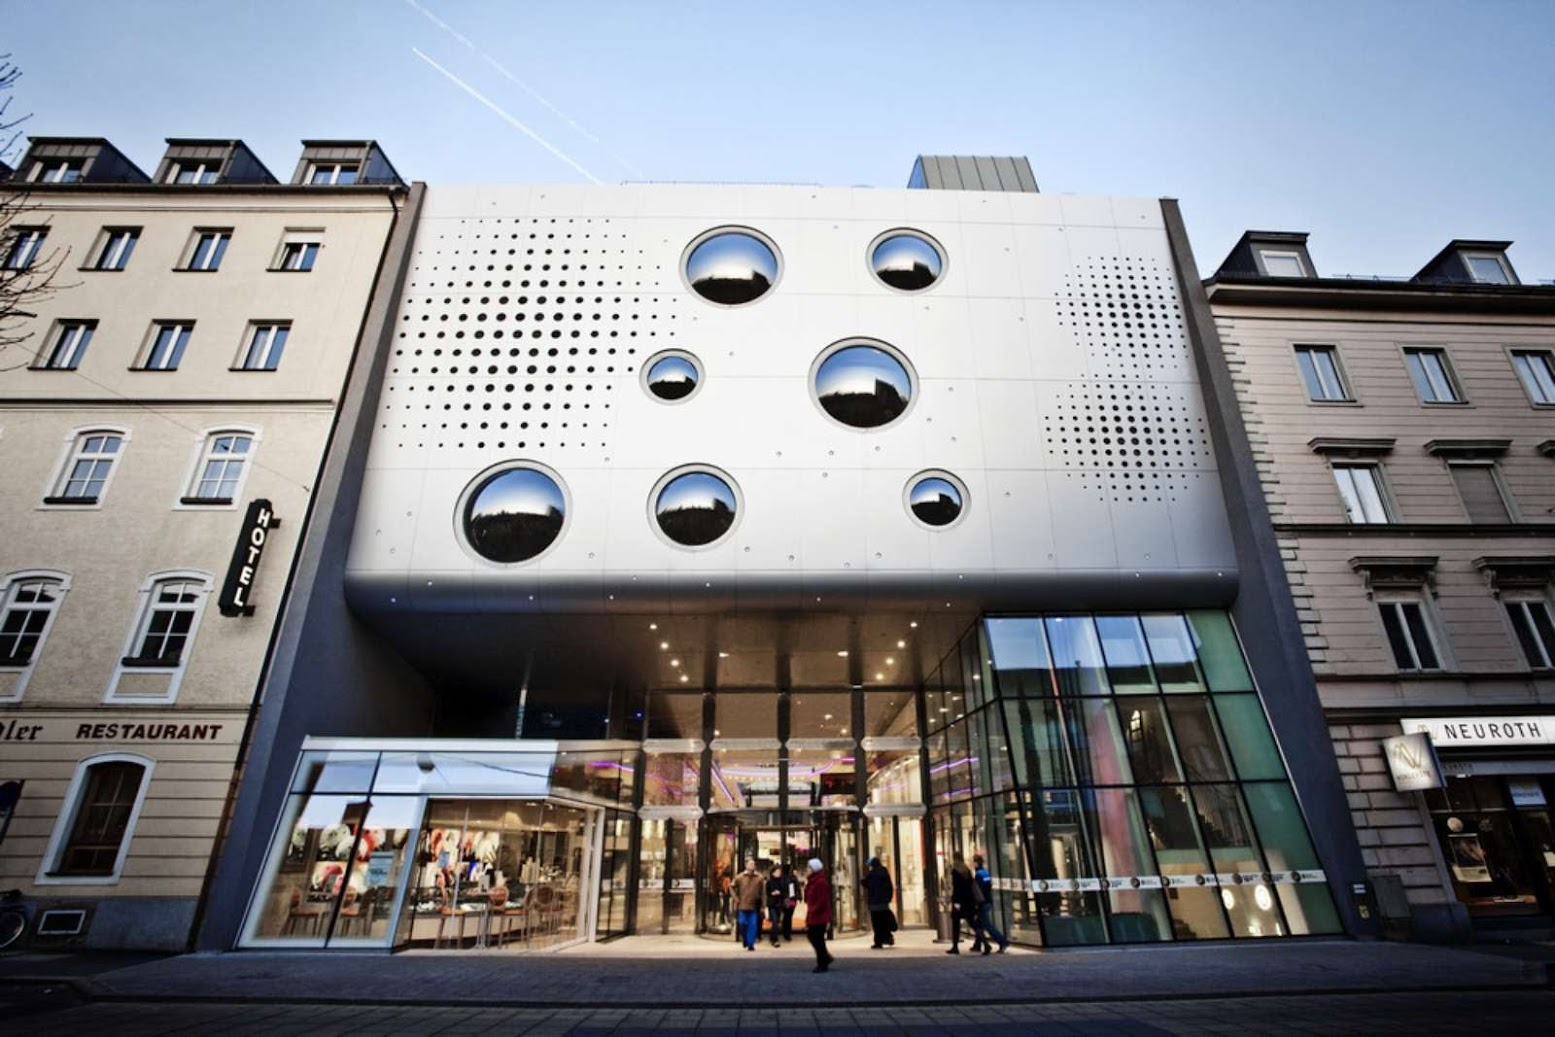 Linz, Austria: [LENTIA CITY BY LOVE ARCHITECTURE]